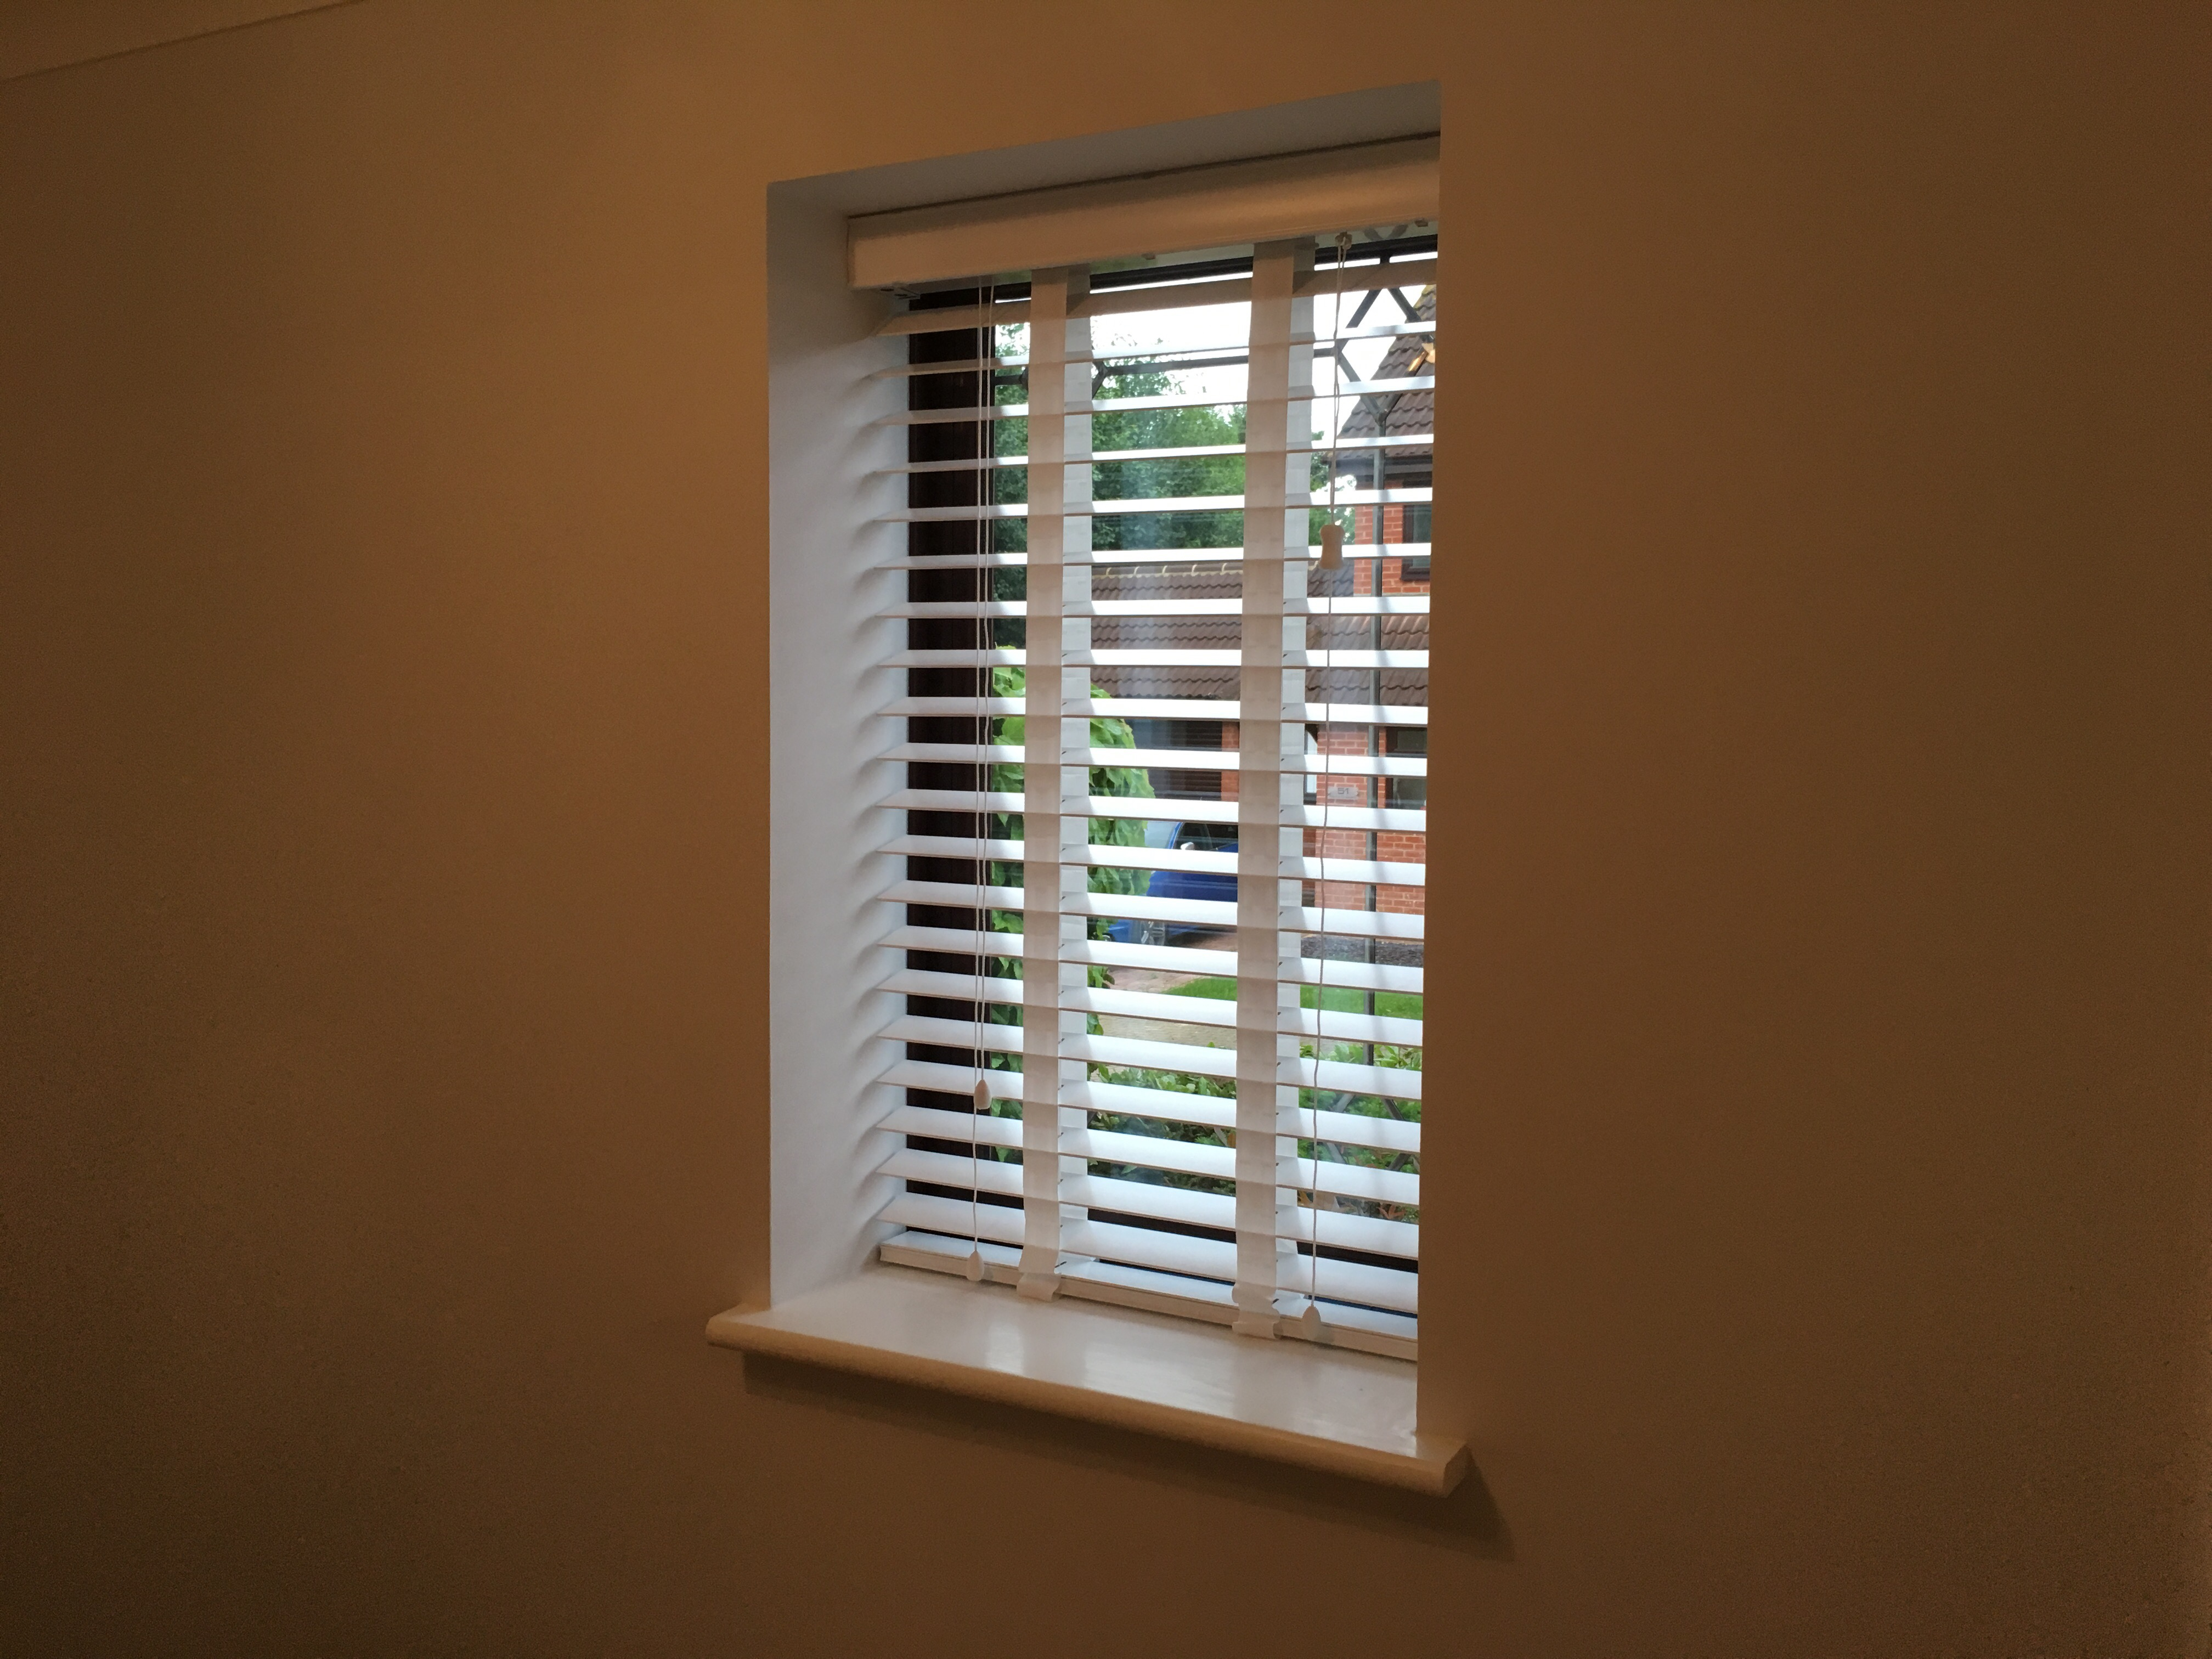 shutter southern plantation shutters products johnny ontario installing clearview installation blinds window